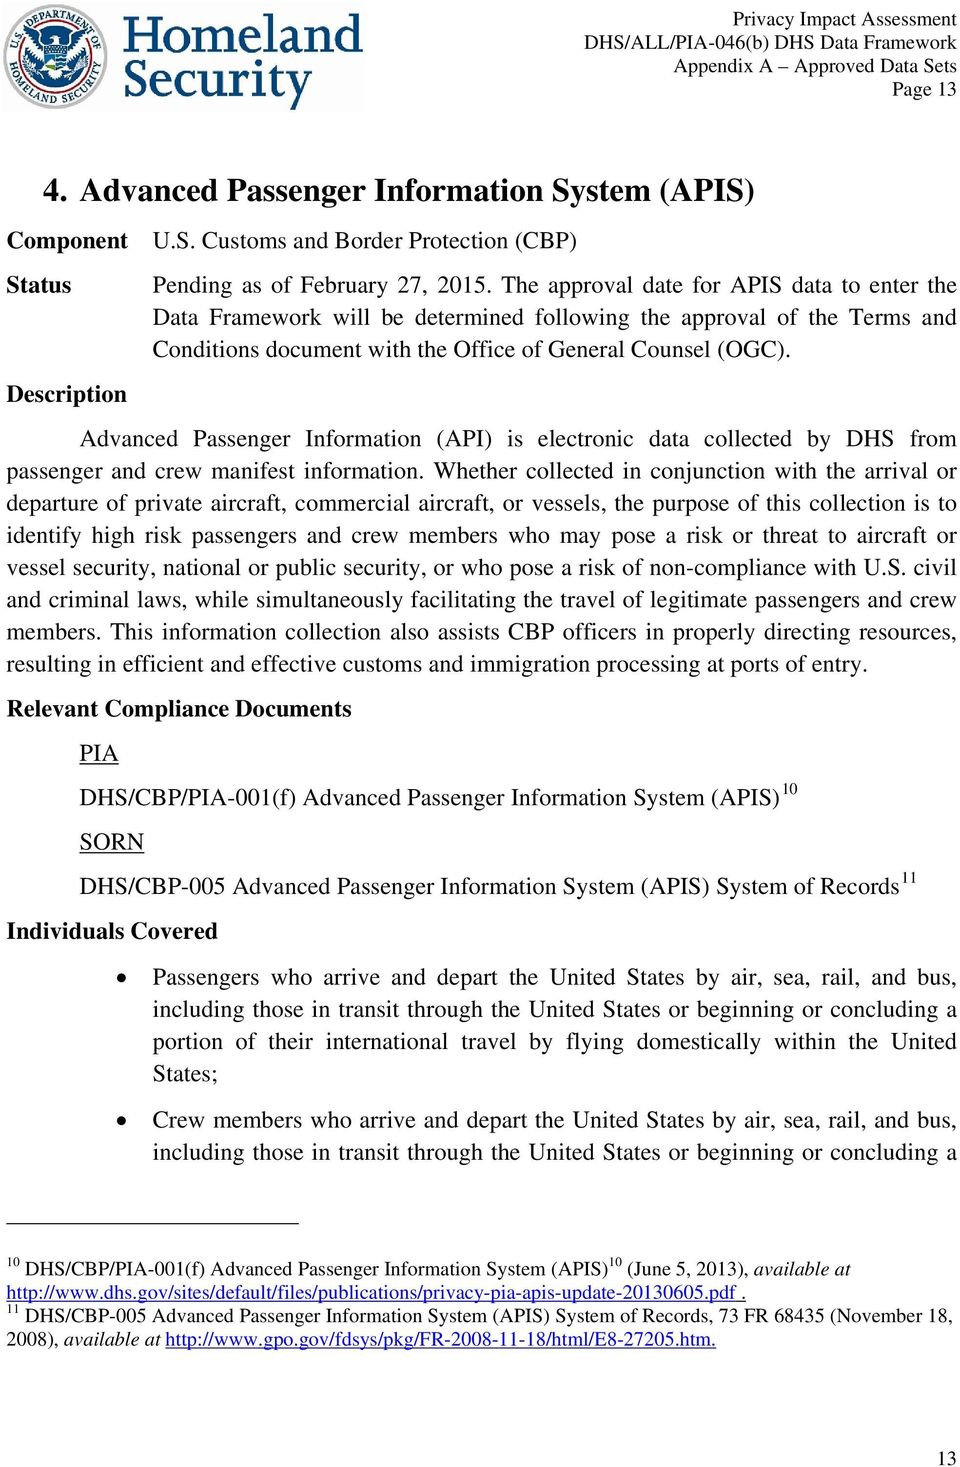 Advanced Passenger Information (API) is electronic data collected by DHS from passenger and crew manifest information.